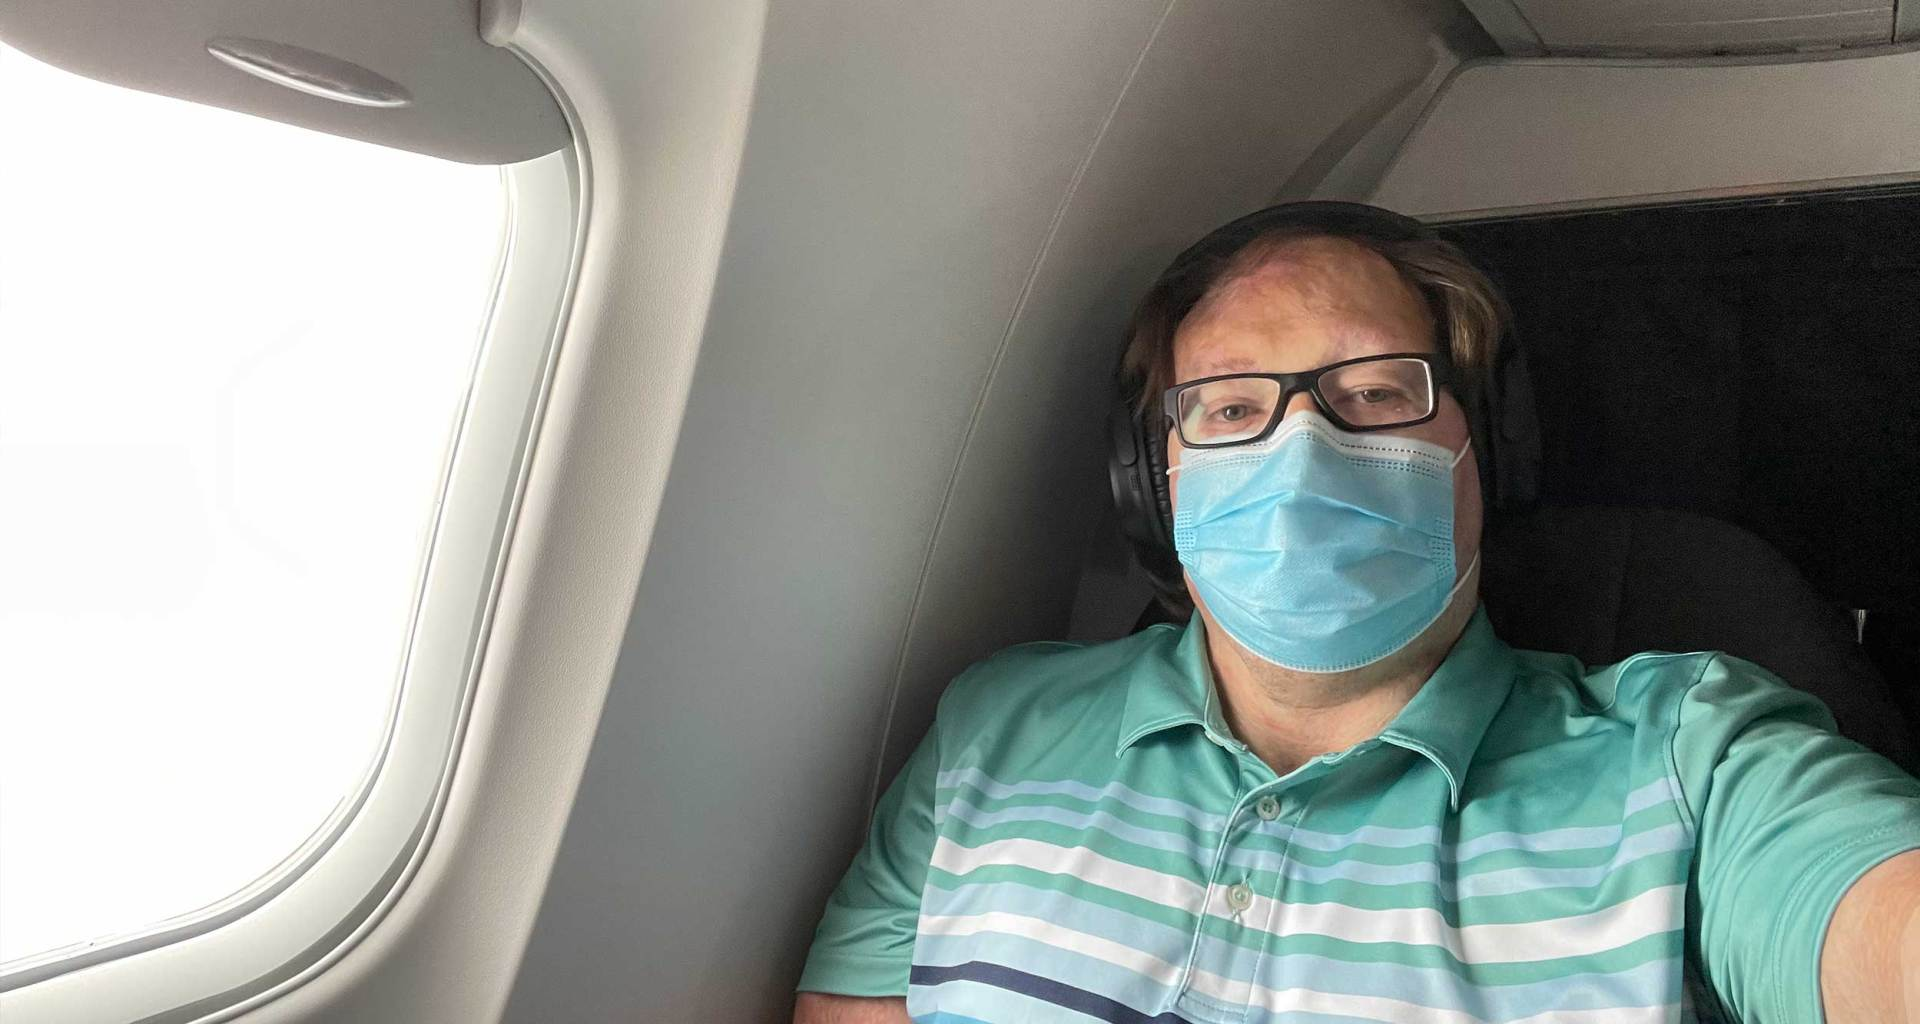 John takes selfie during flight while wearing face mask.